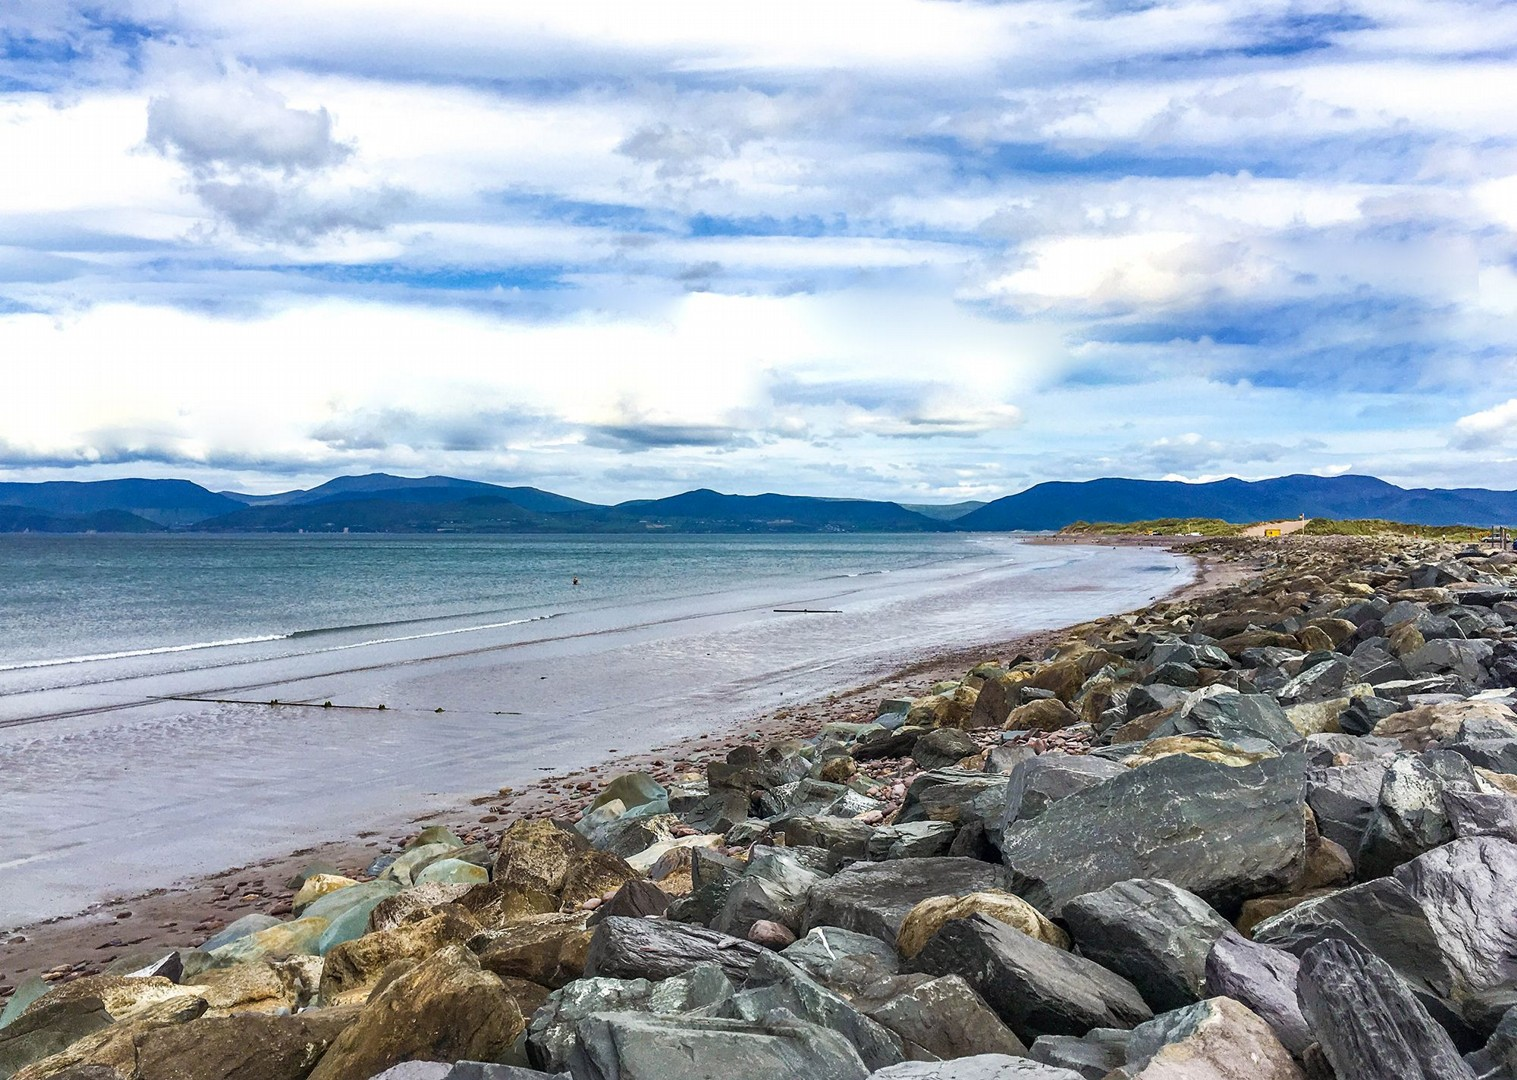 beaches-ireland-self-guided-cycling-holiday-leisure-trip.jpg - Ireland - Highlights of Kerry - Self-Guided Leisure Cycling Holiday - Leisure Cycling